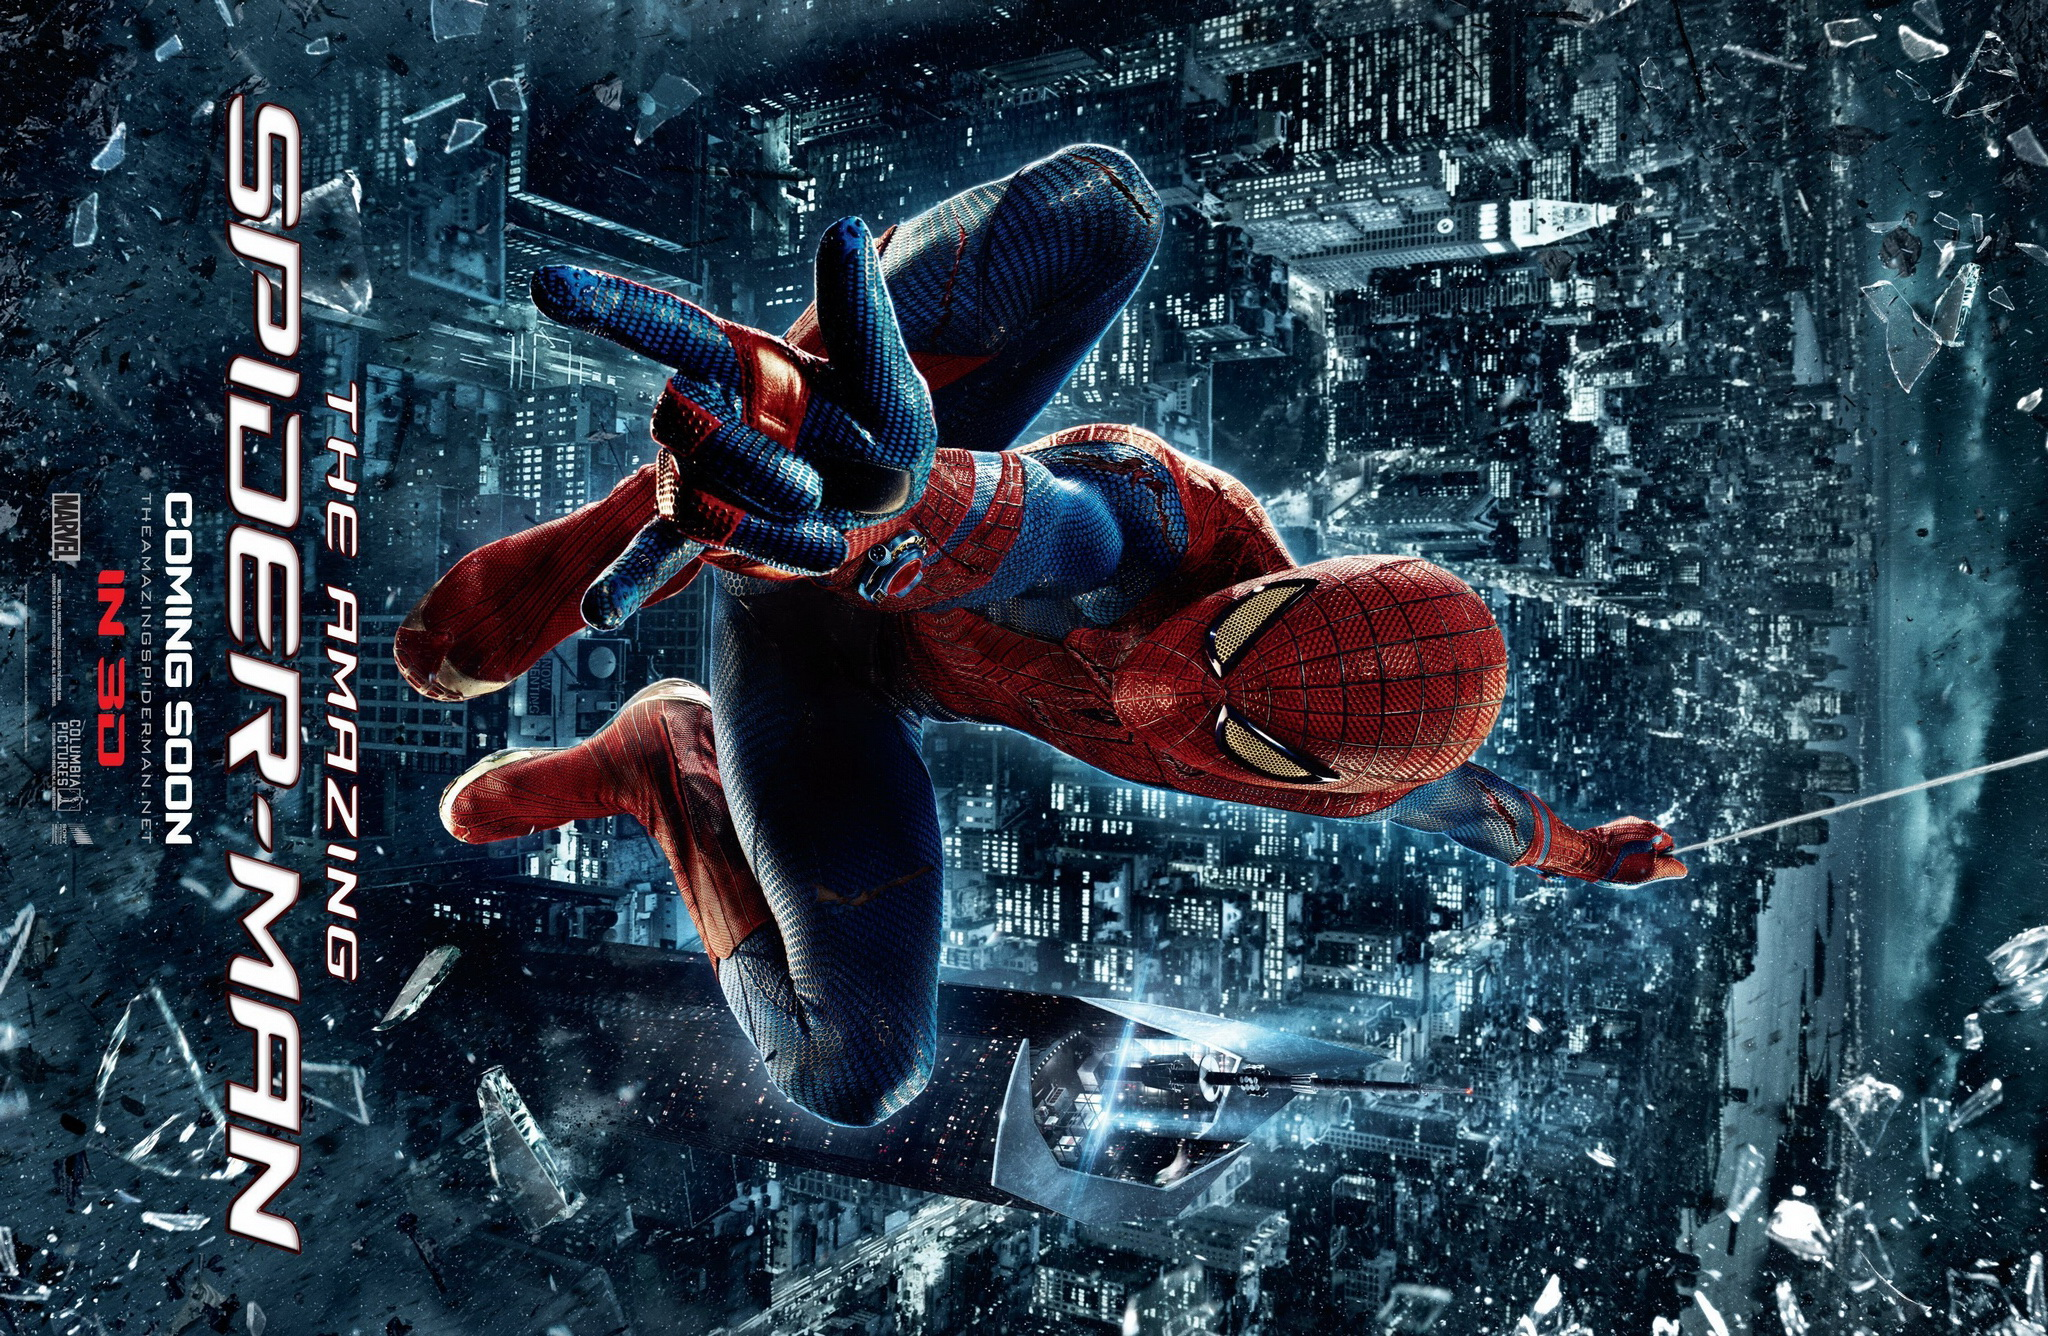 Spiderman Live Wallpaper Hd: The Amazing Spider Man 3 Wallpaper